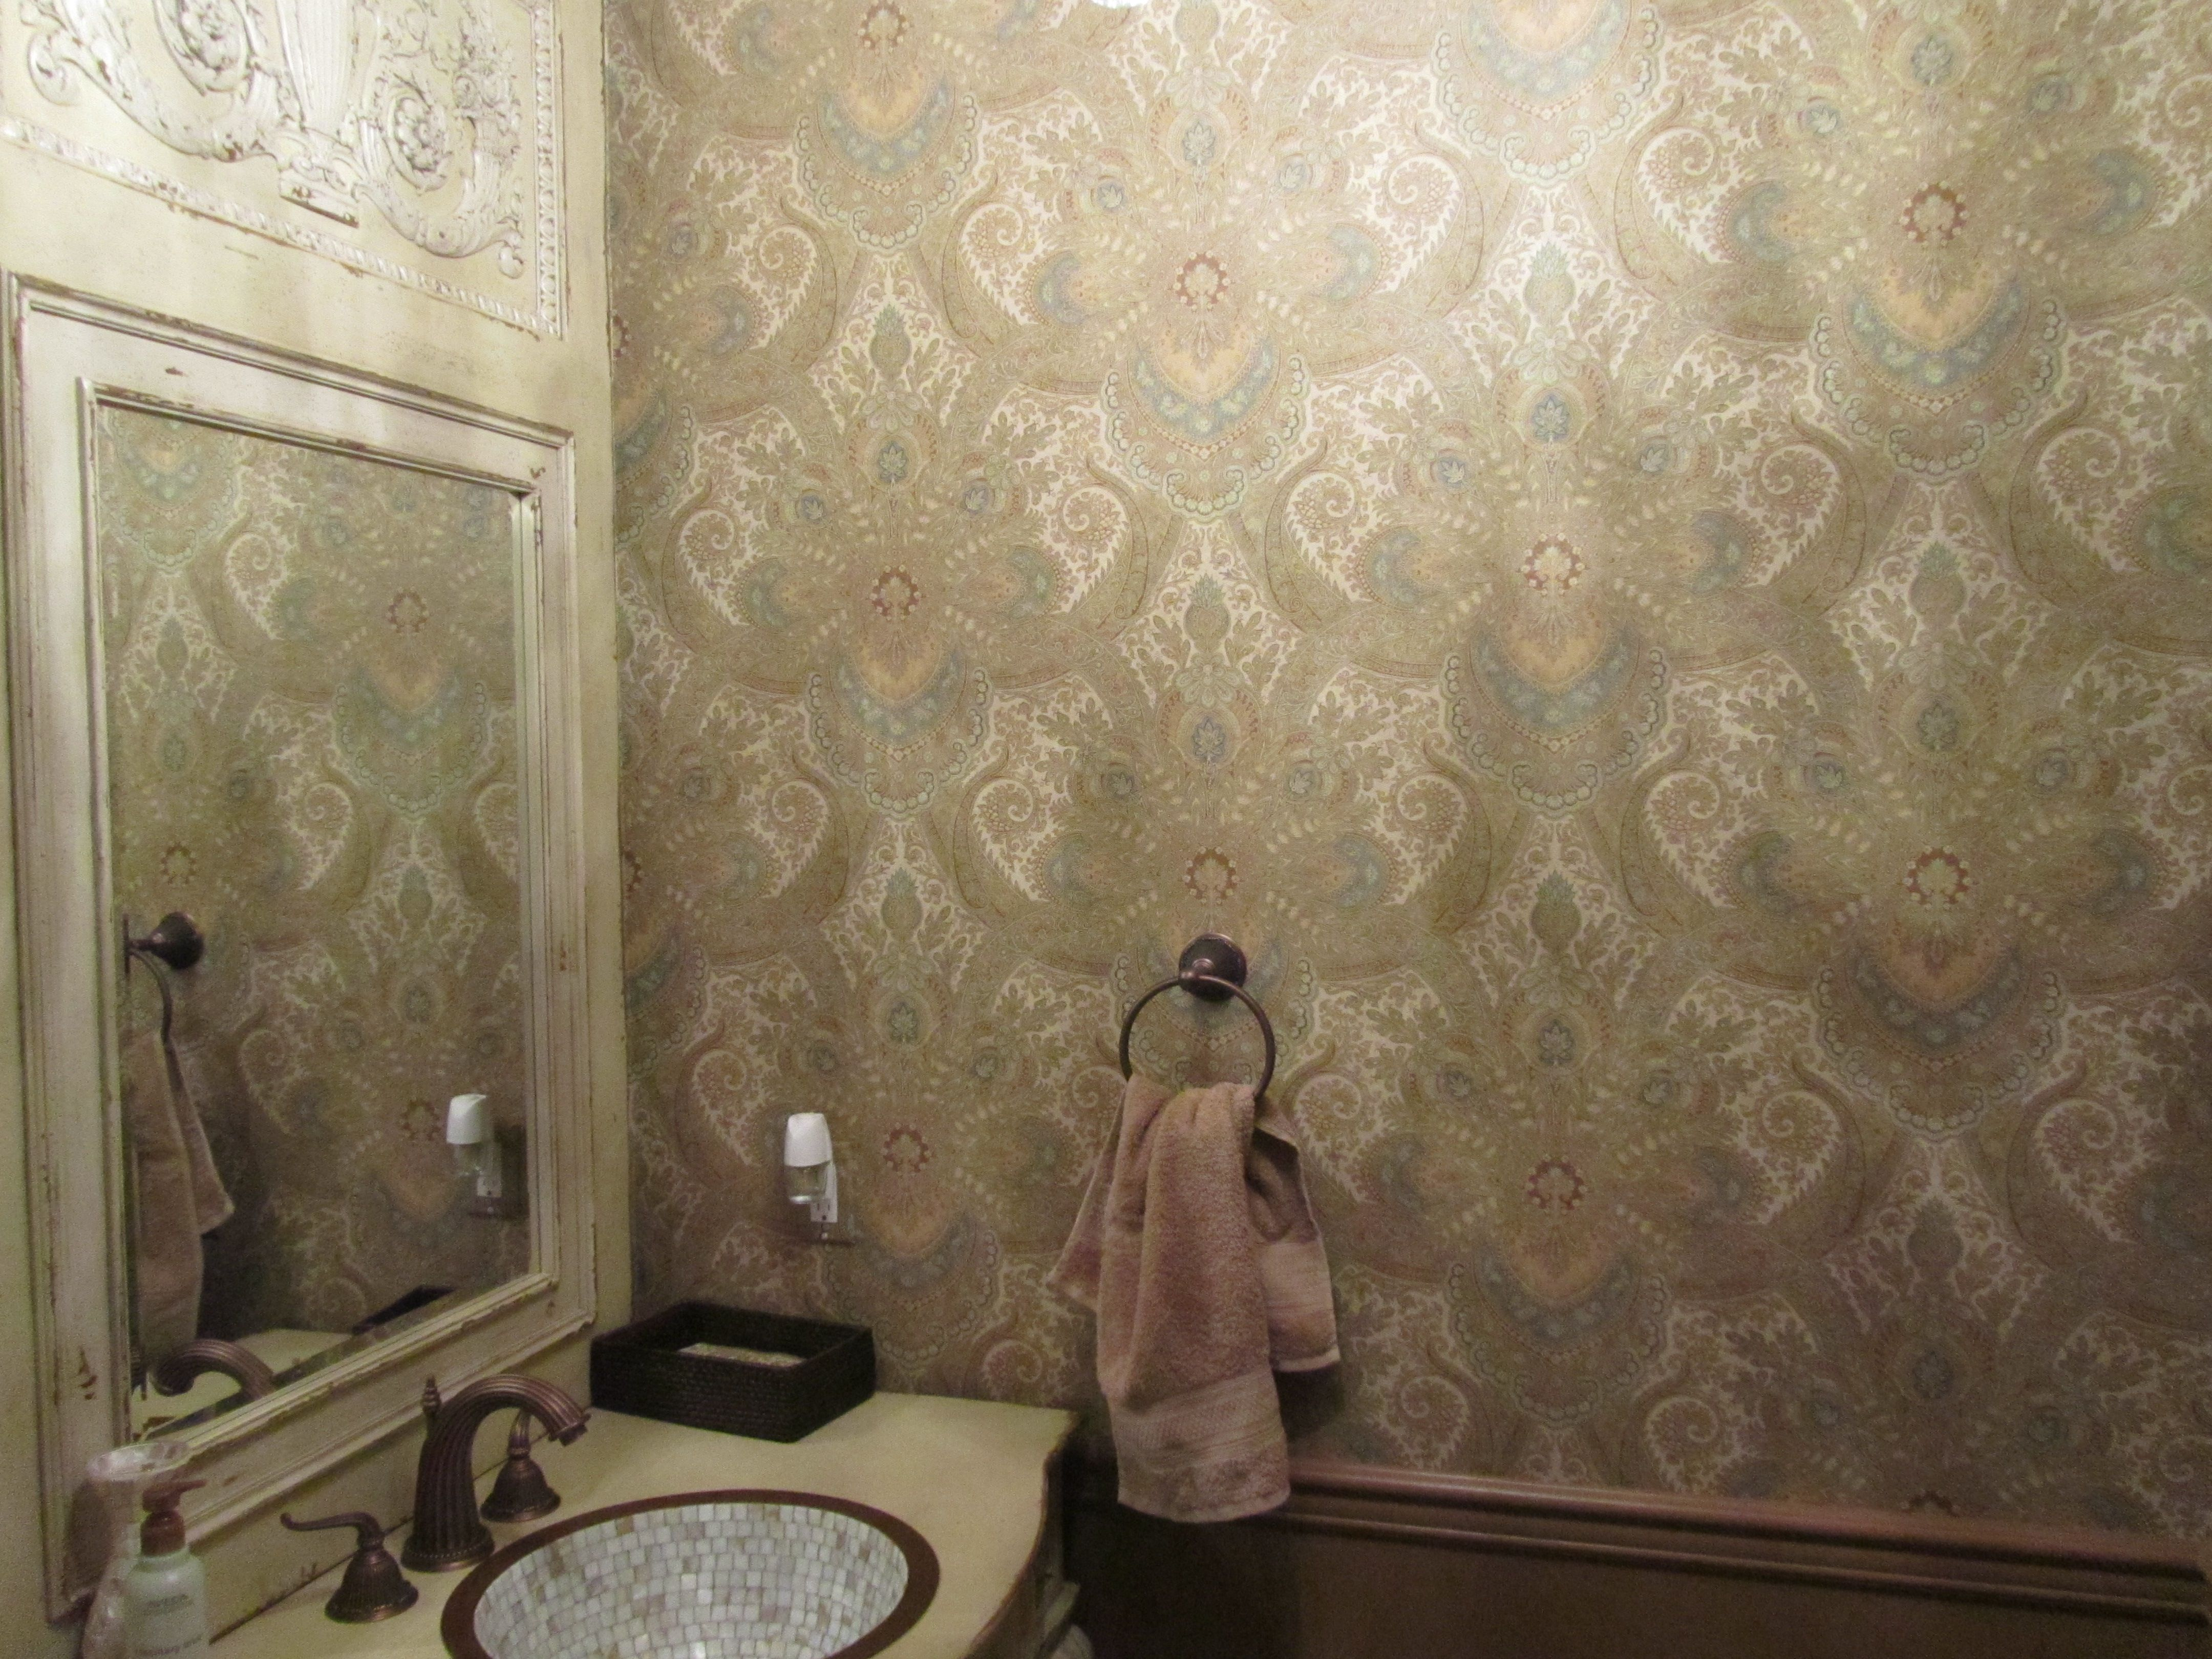 Sophisticated Bathroom Wallpaper In Franklin Lakes Nj Sophisticated Bathroom How To Install Wallpaper County House